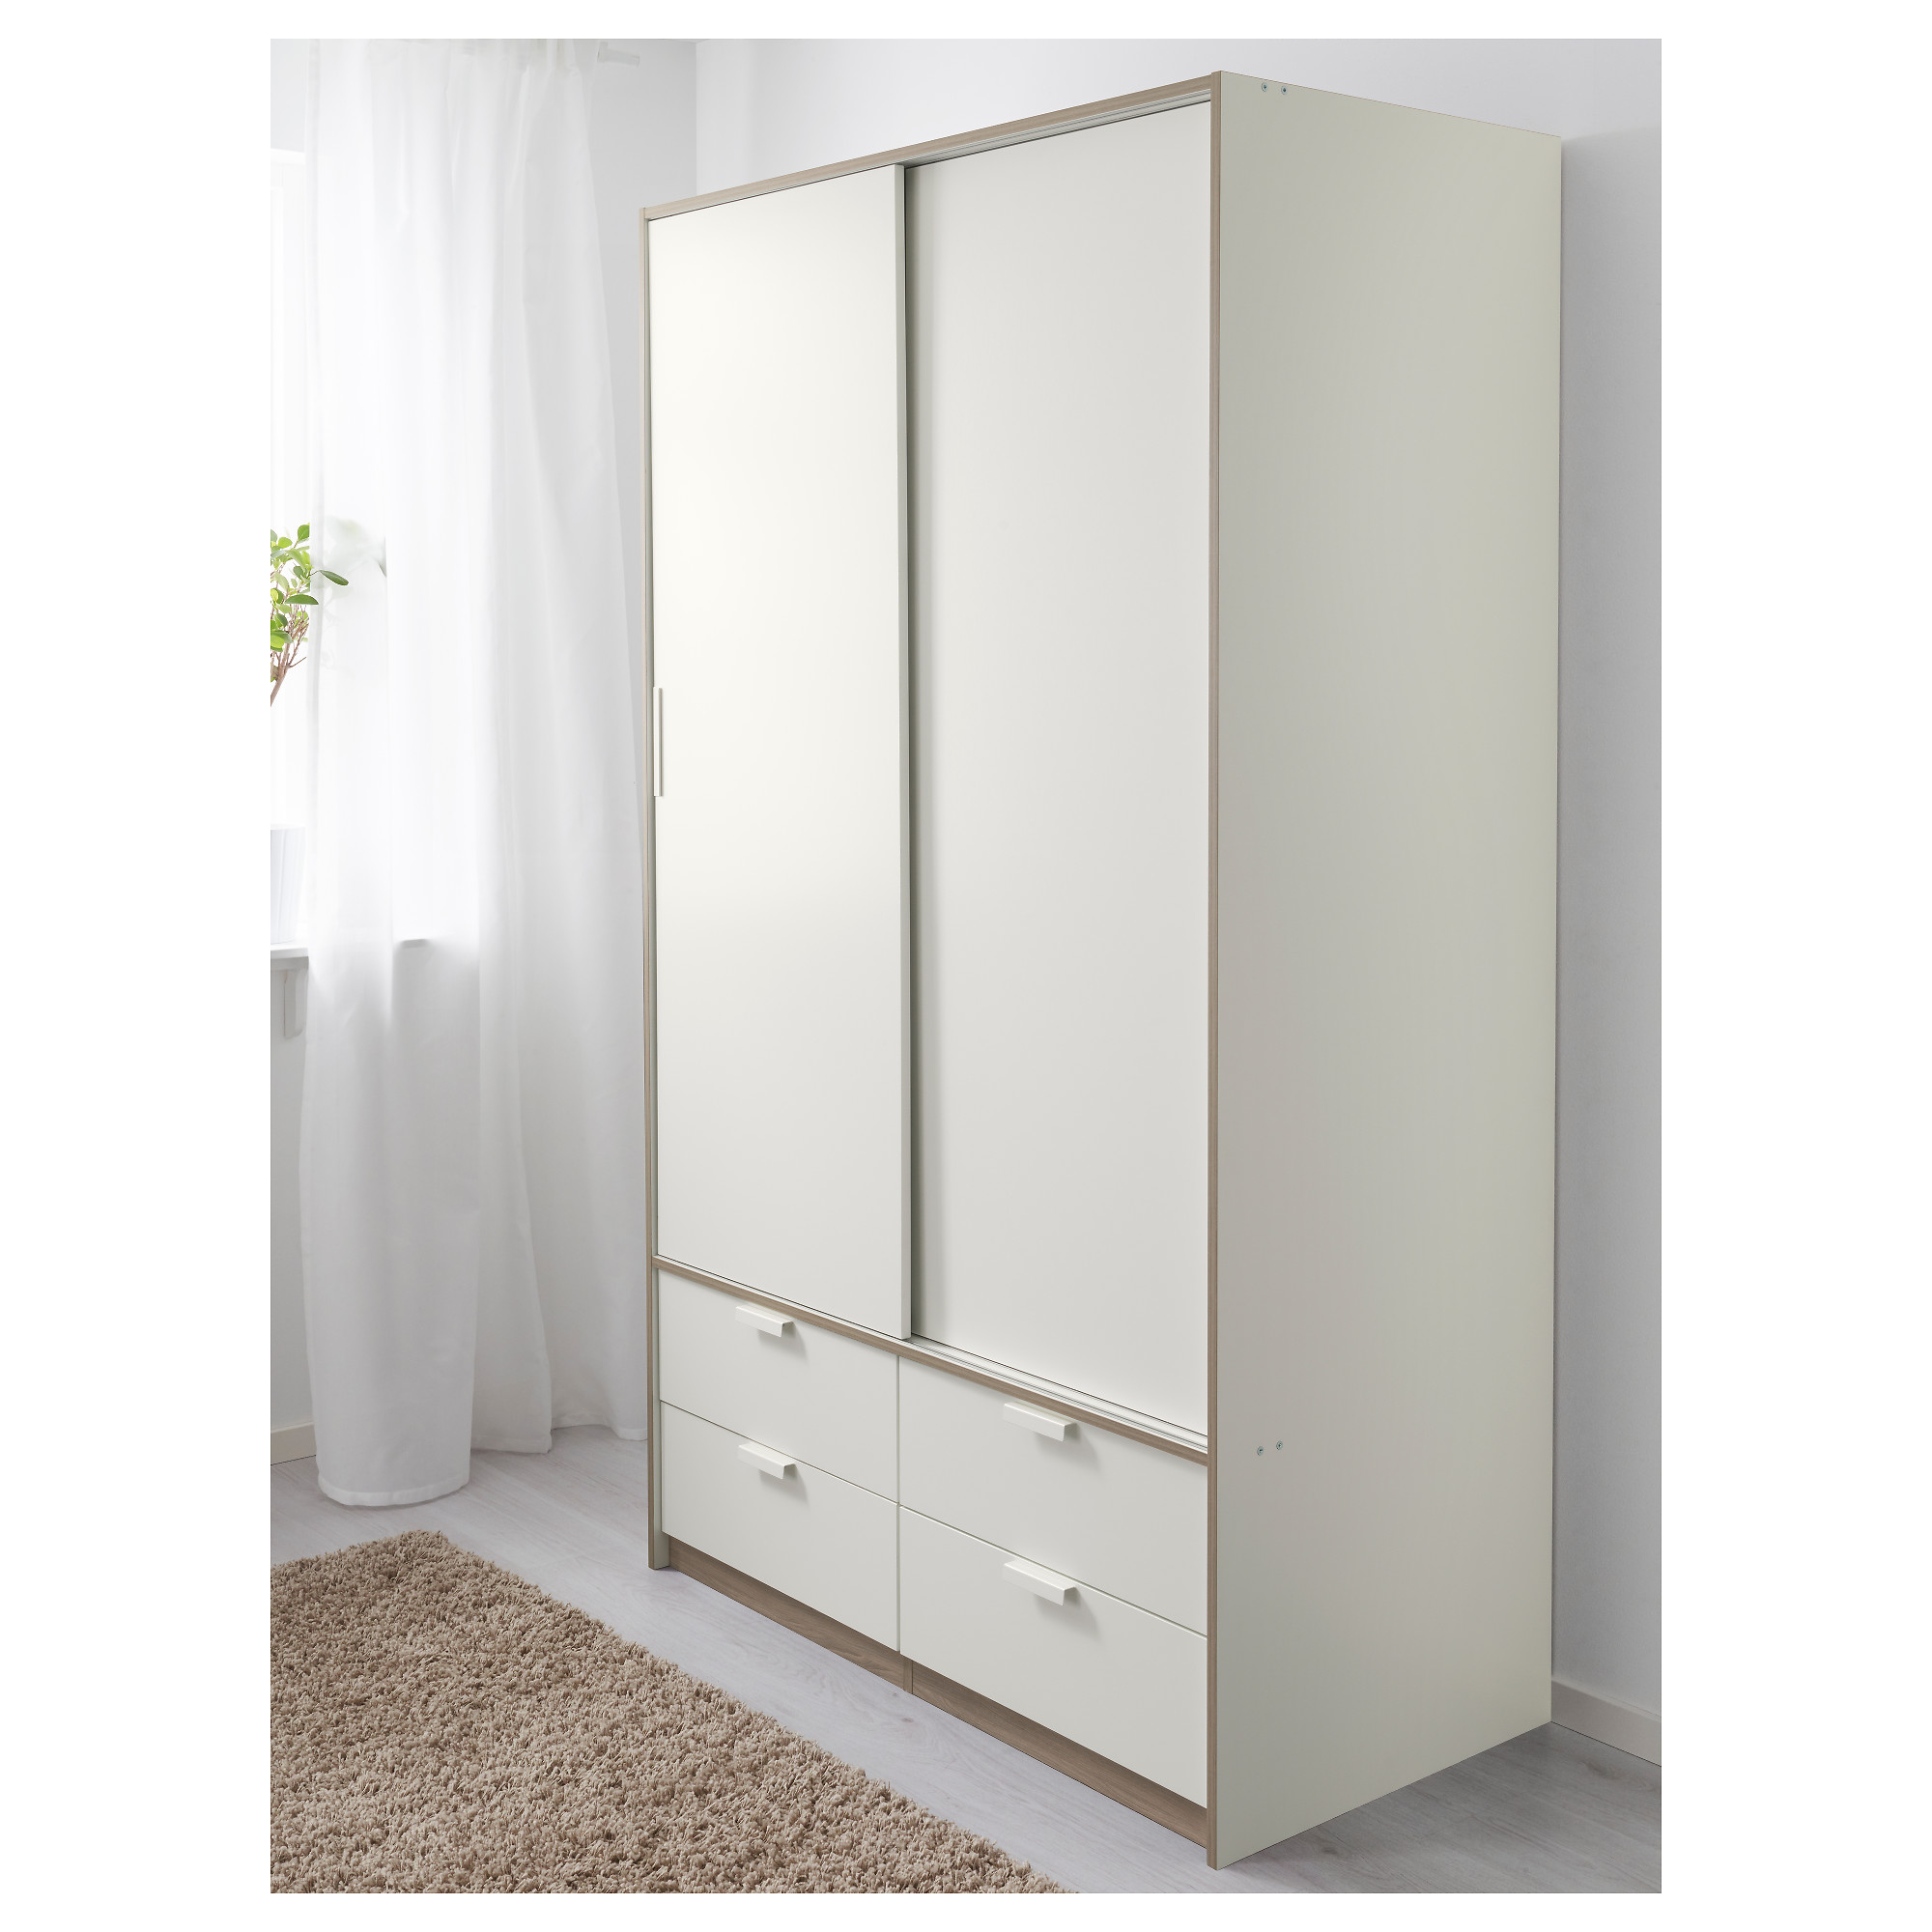 TRYSIL Wardrobe W Sliding Doors Drawers IKEA - Ikea wardrobe